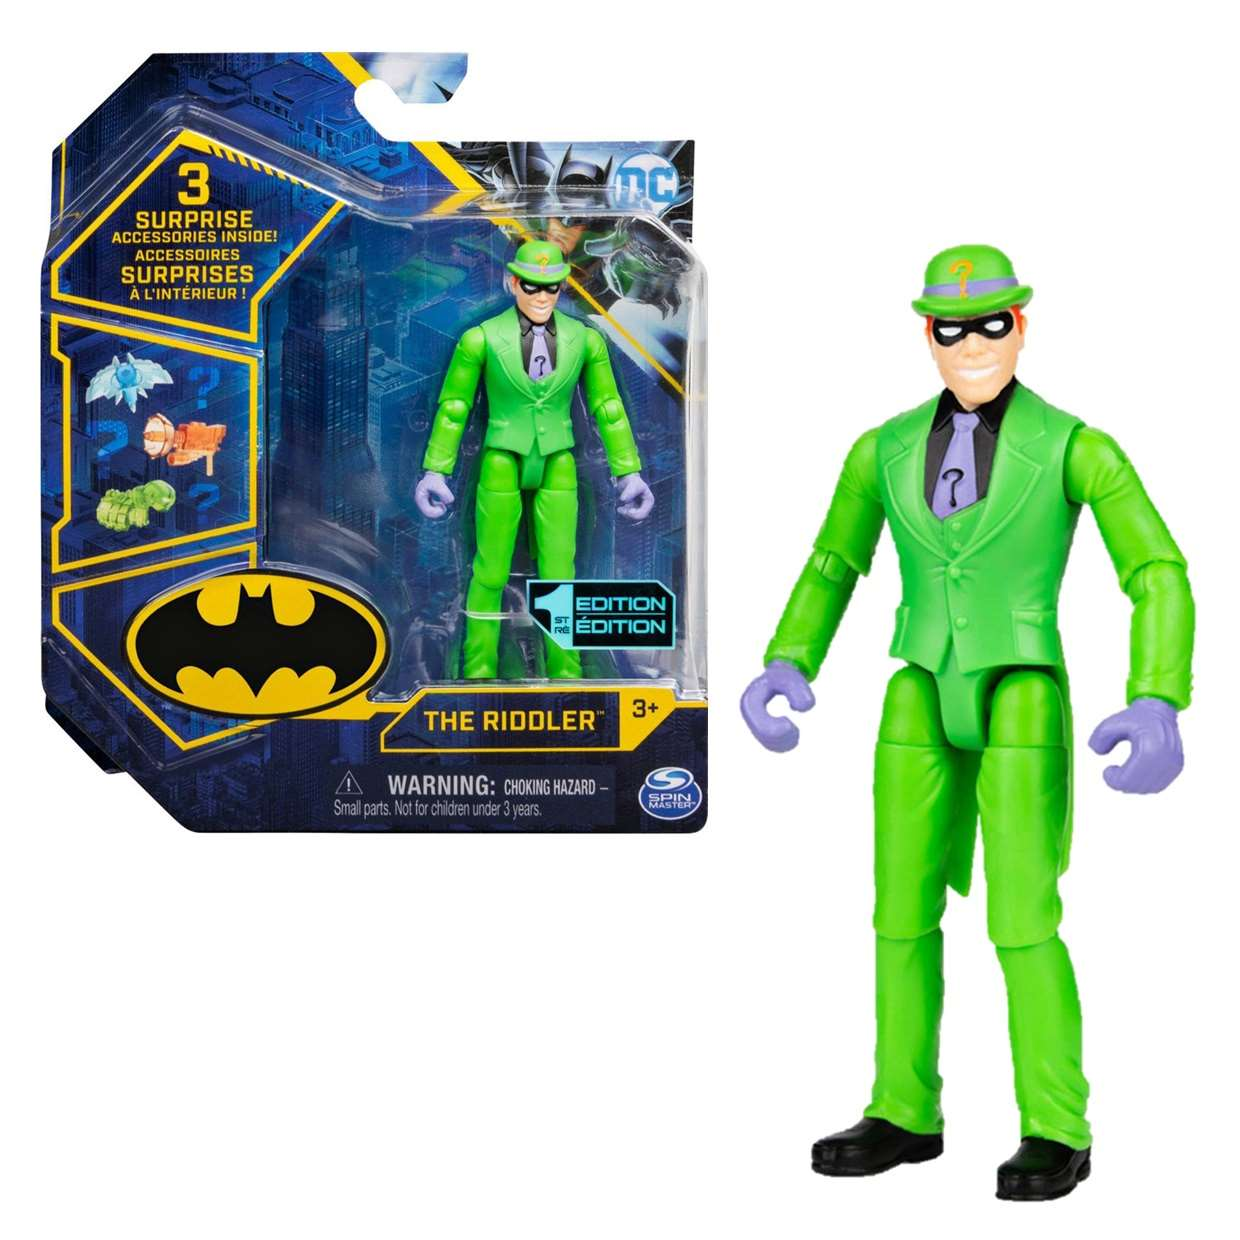 The Riddler 1st Edition Figura Collect Them All Spin Master